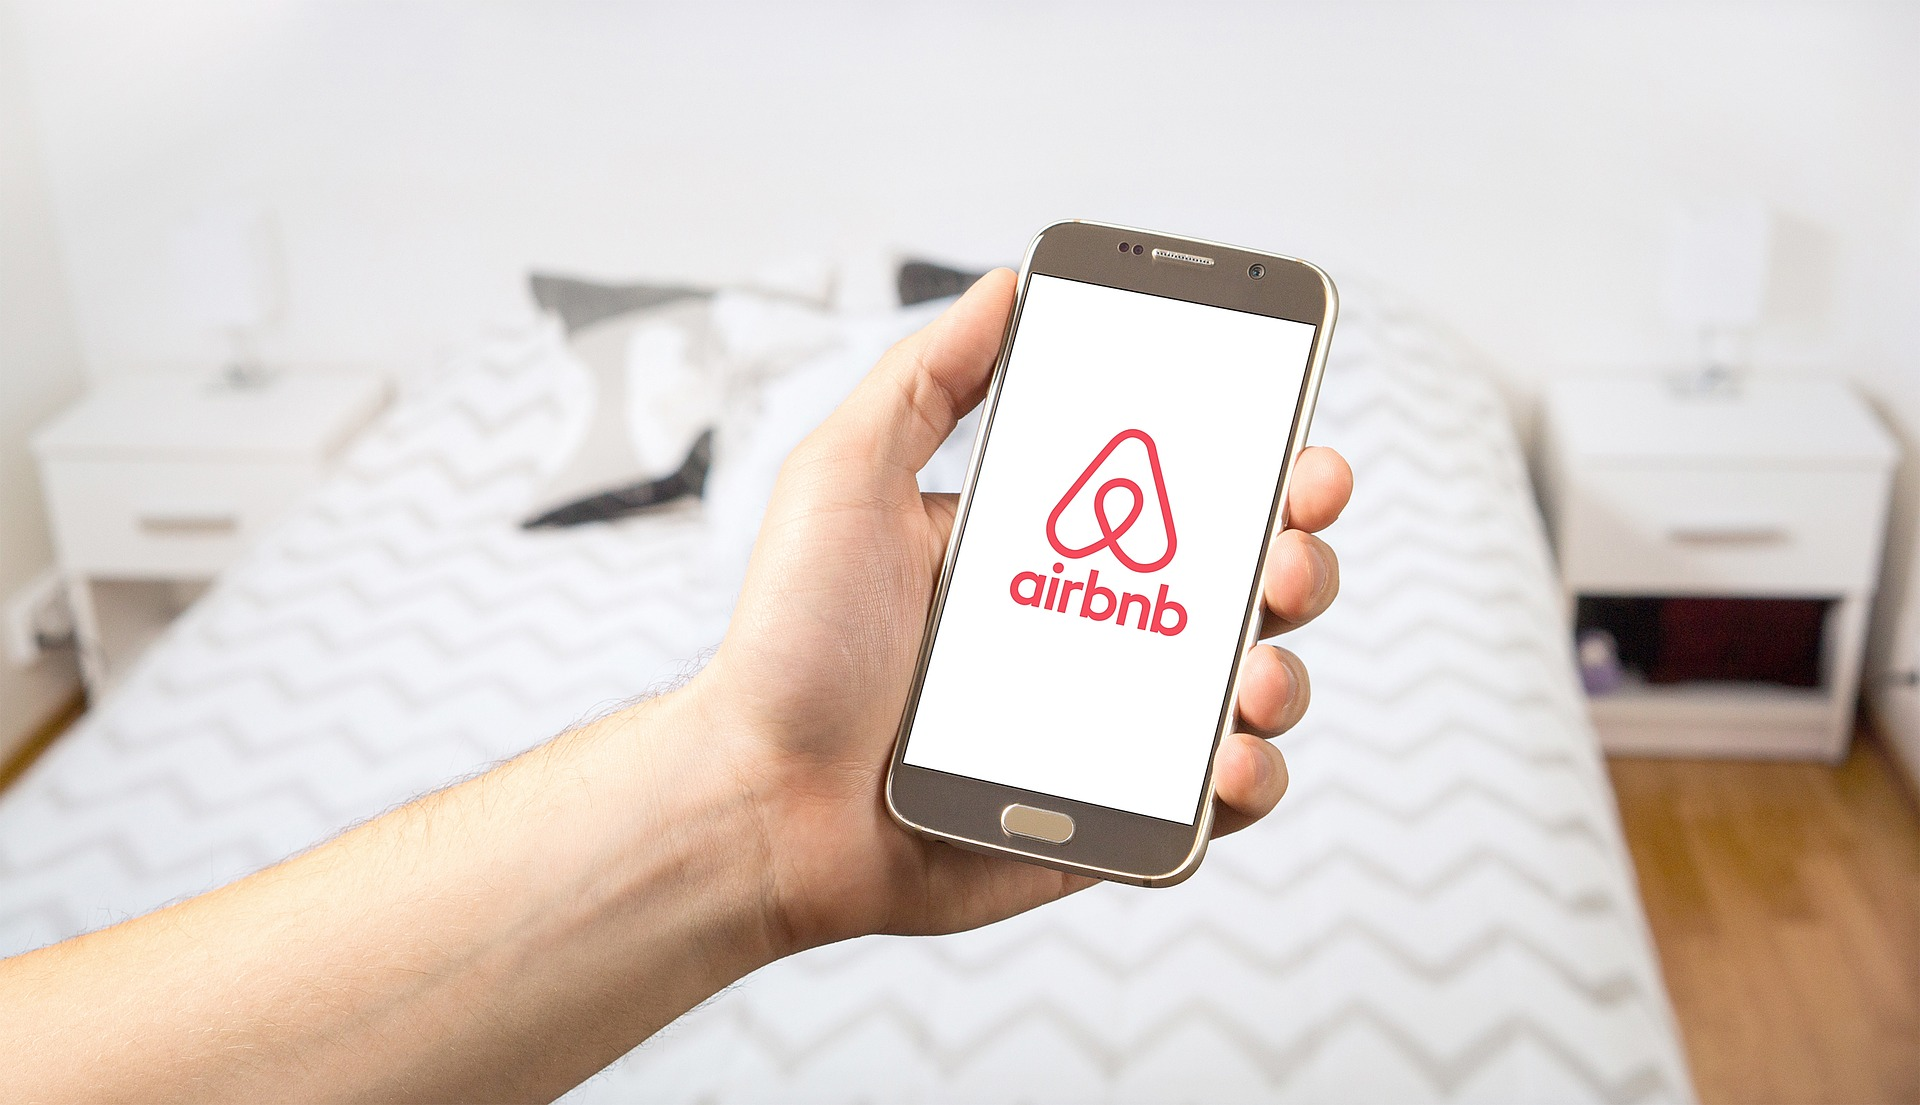 Airbnb on a cell phone